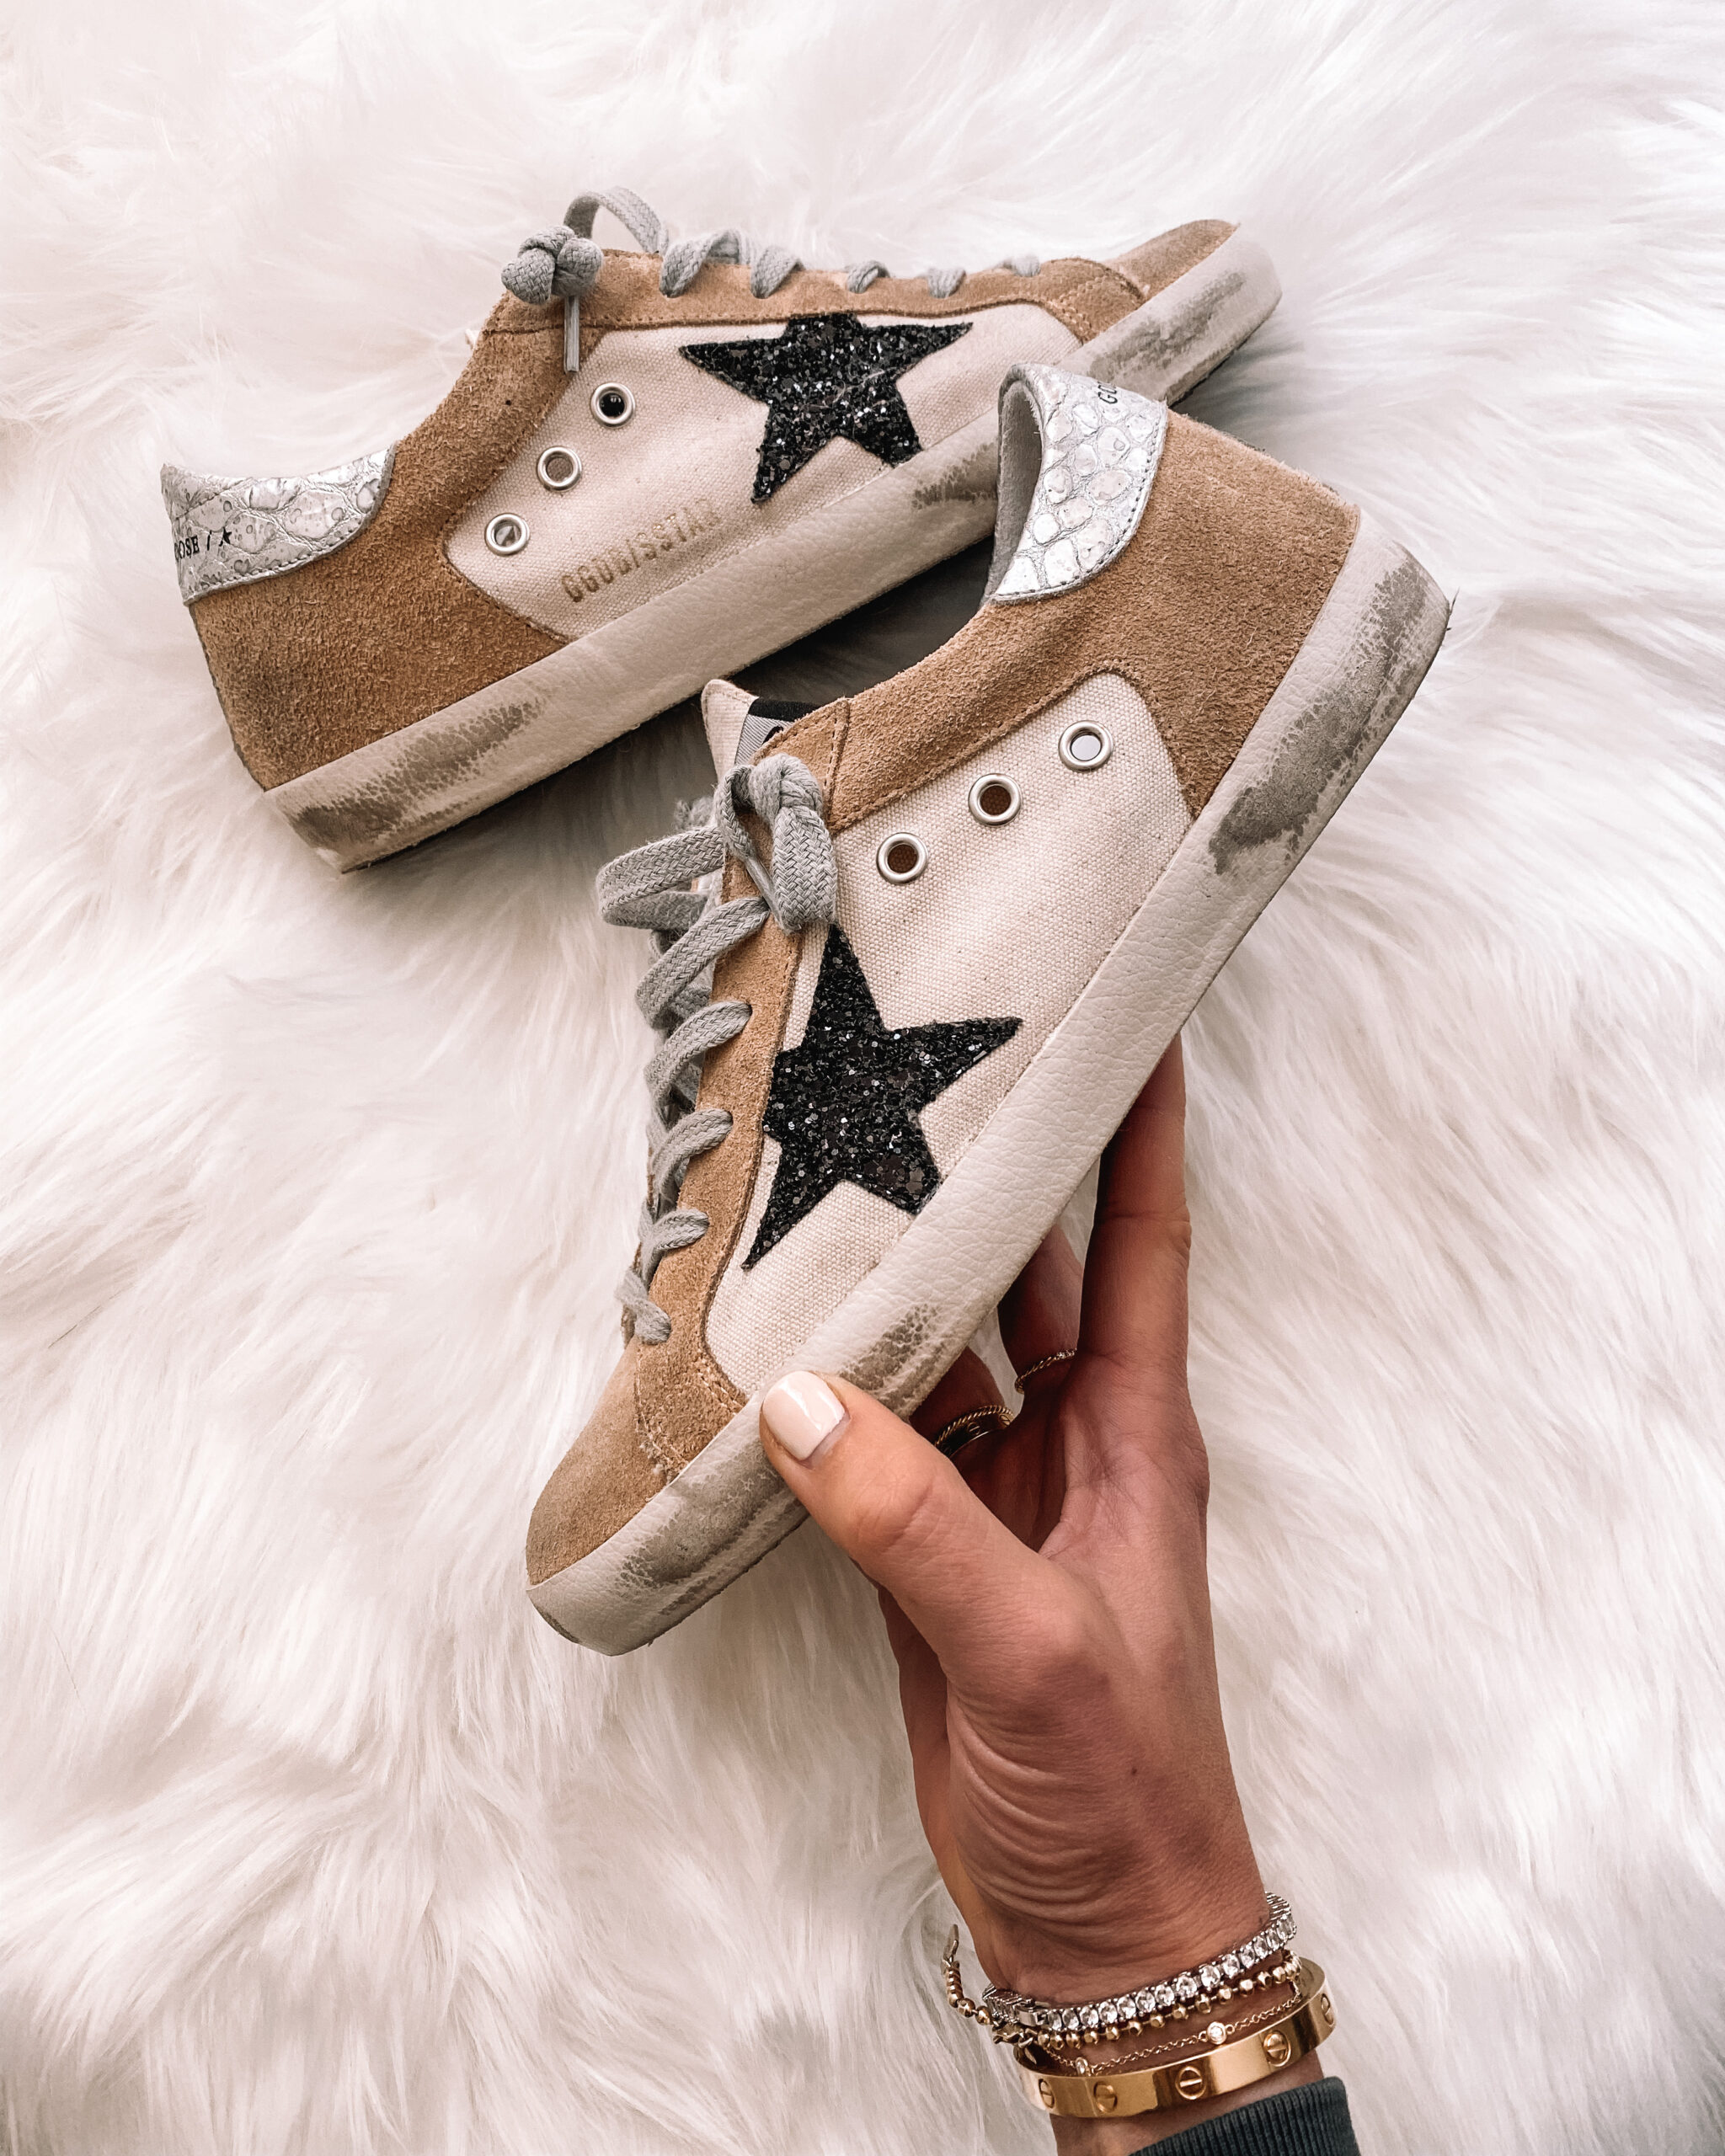 Fashion Jackson Golden Goose Superstar Sneakers Tan Suede Black Star